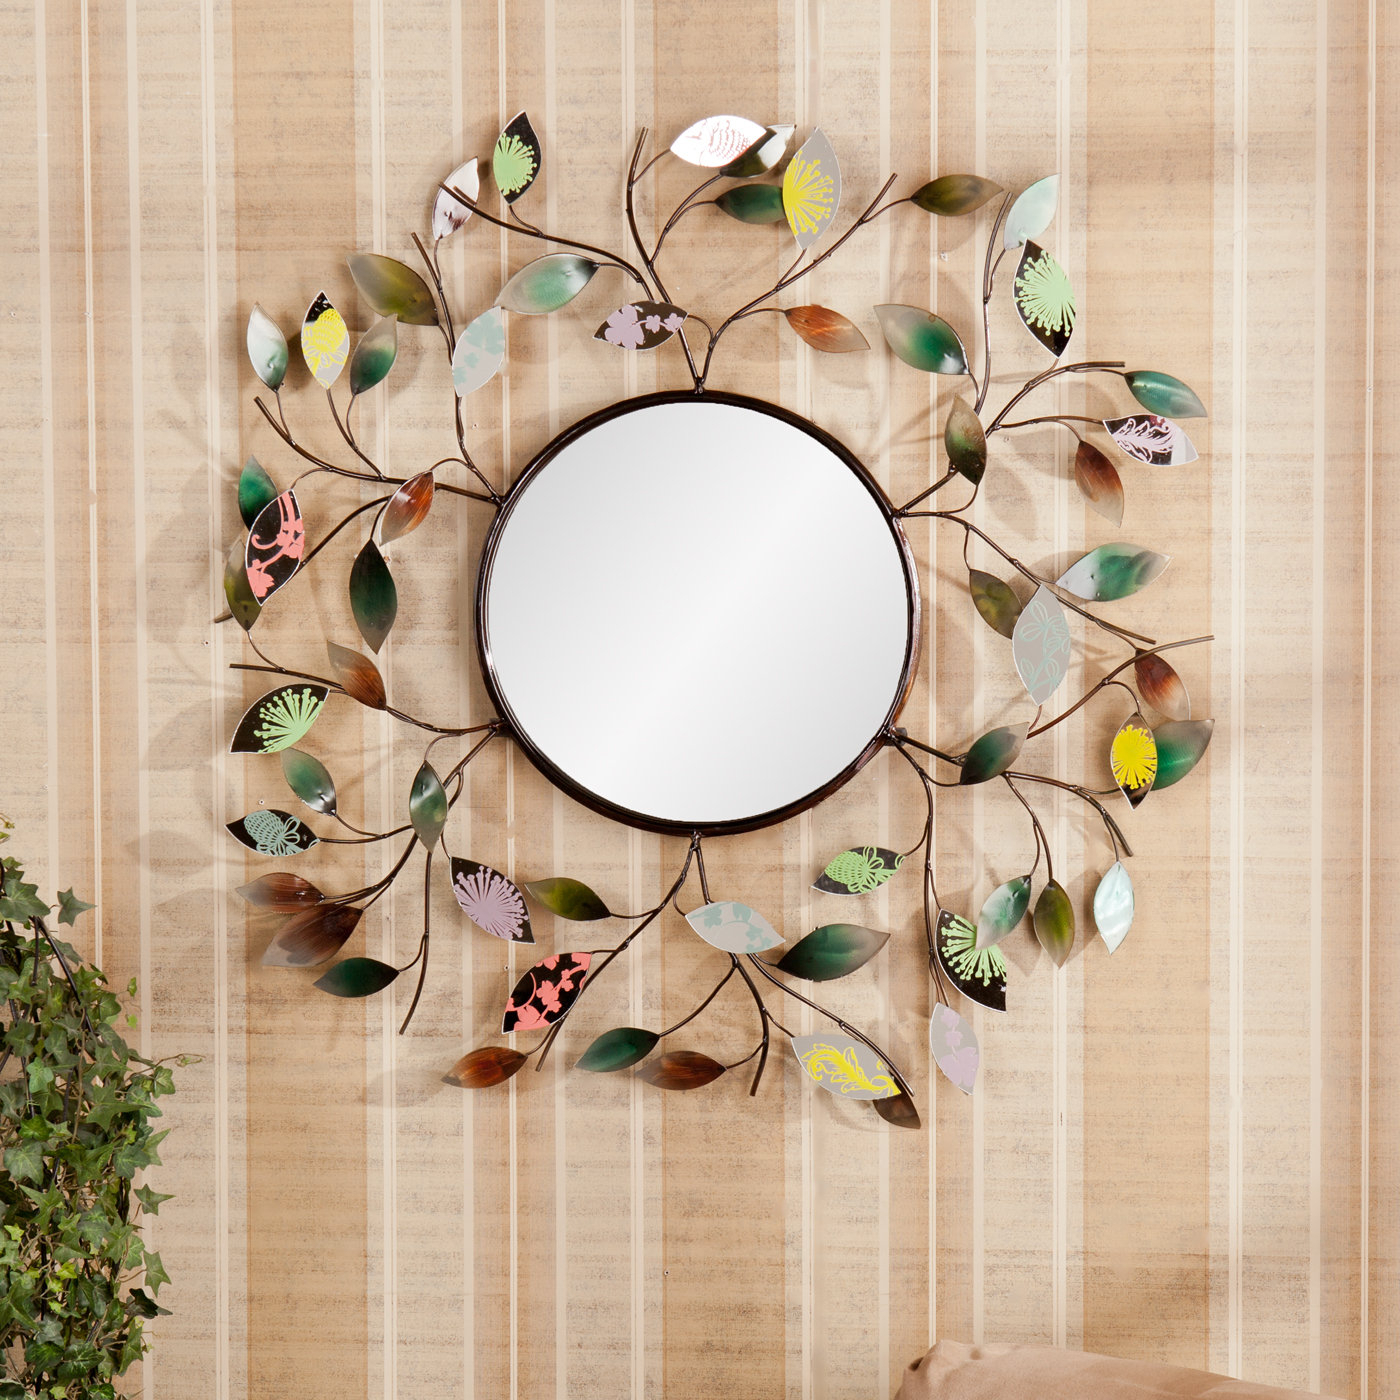 Carstens Sunburst Leaves Wall Mirrors For Most Current Decorative Metallic Leaf Wall Mirror (View 2 of 20)